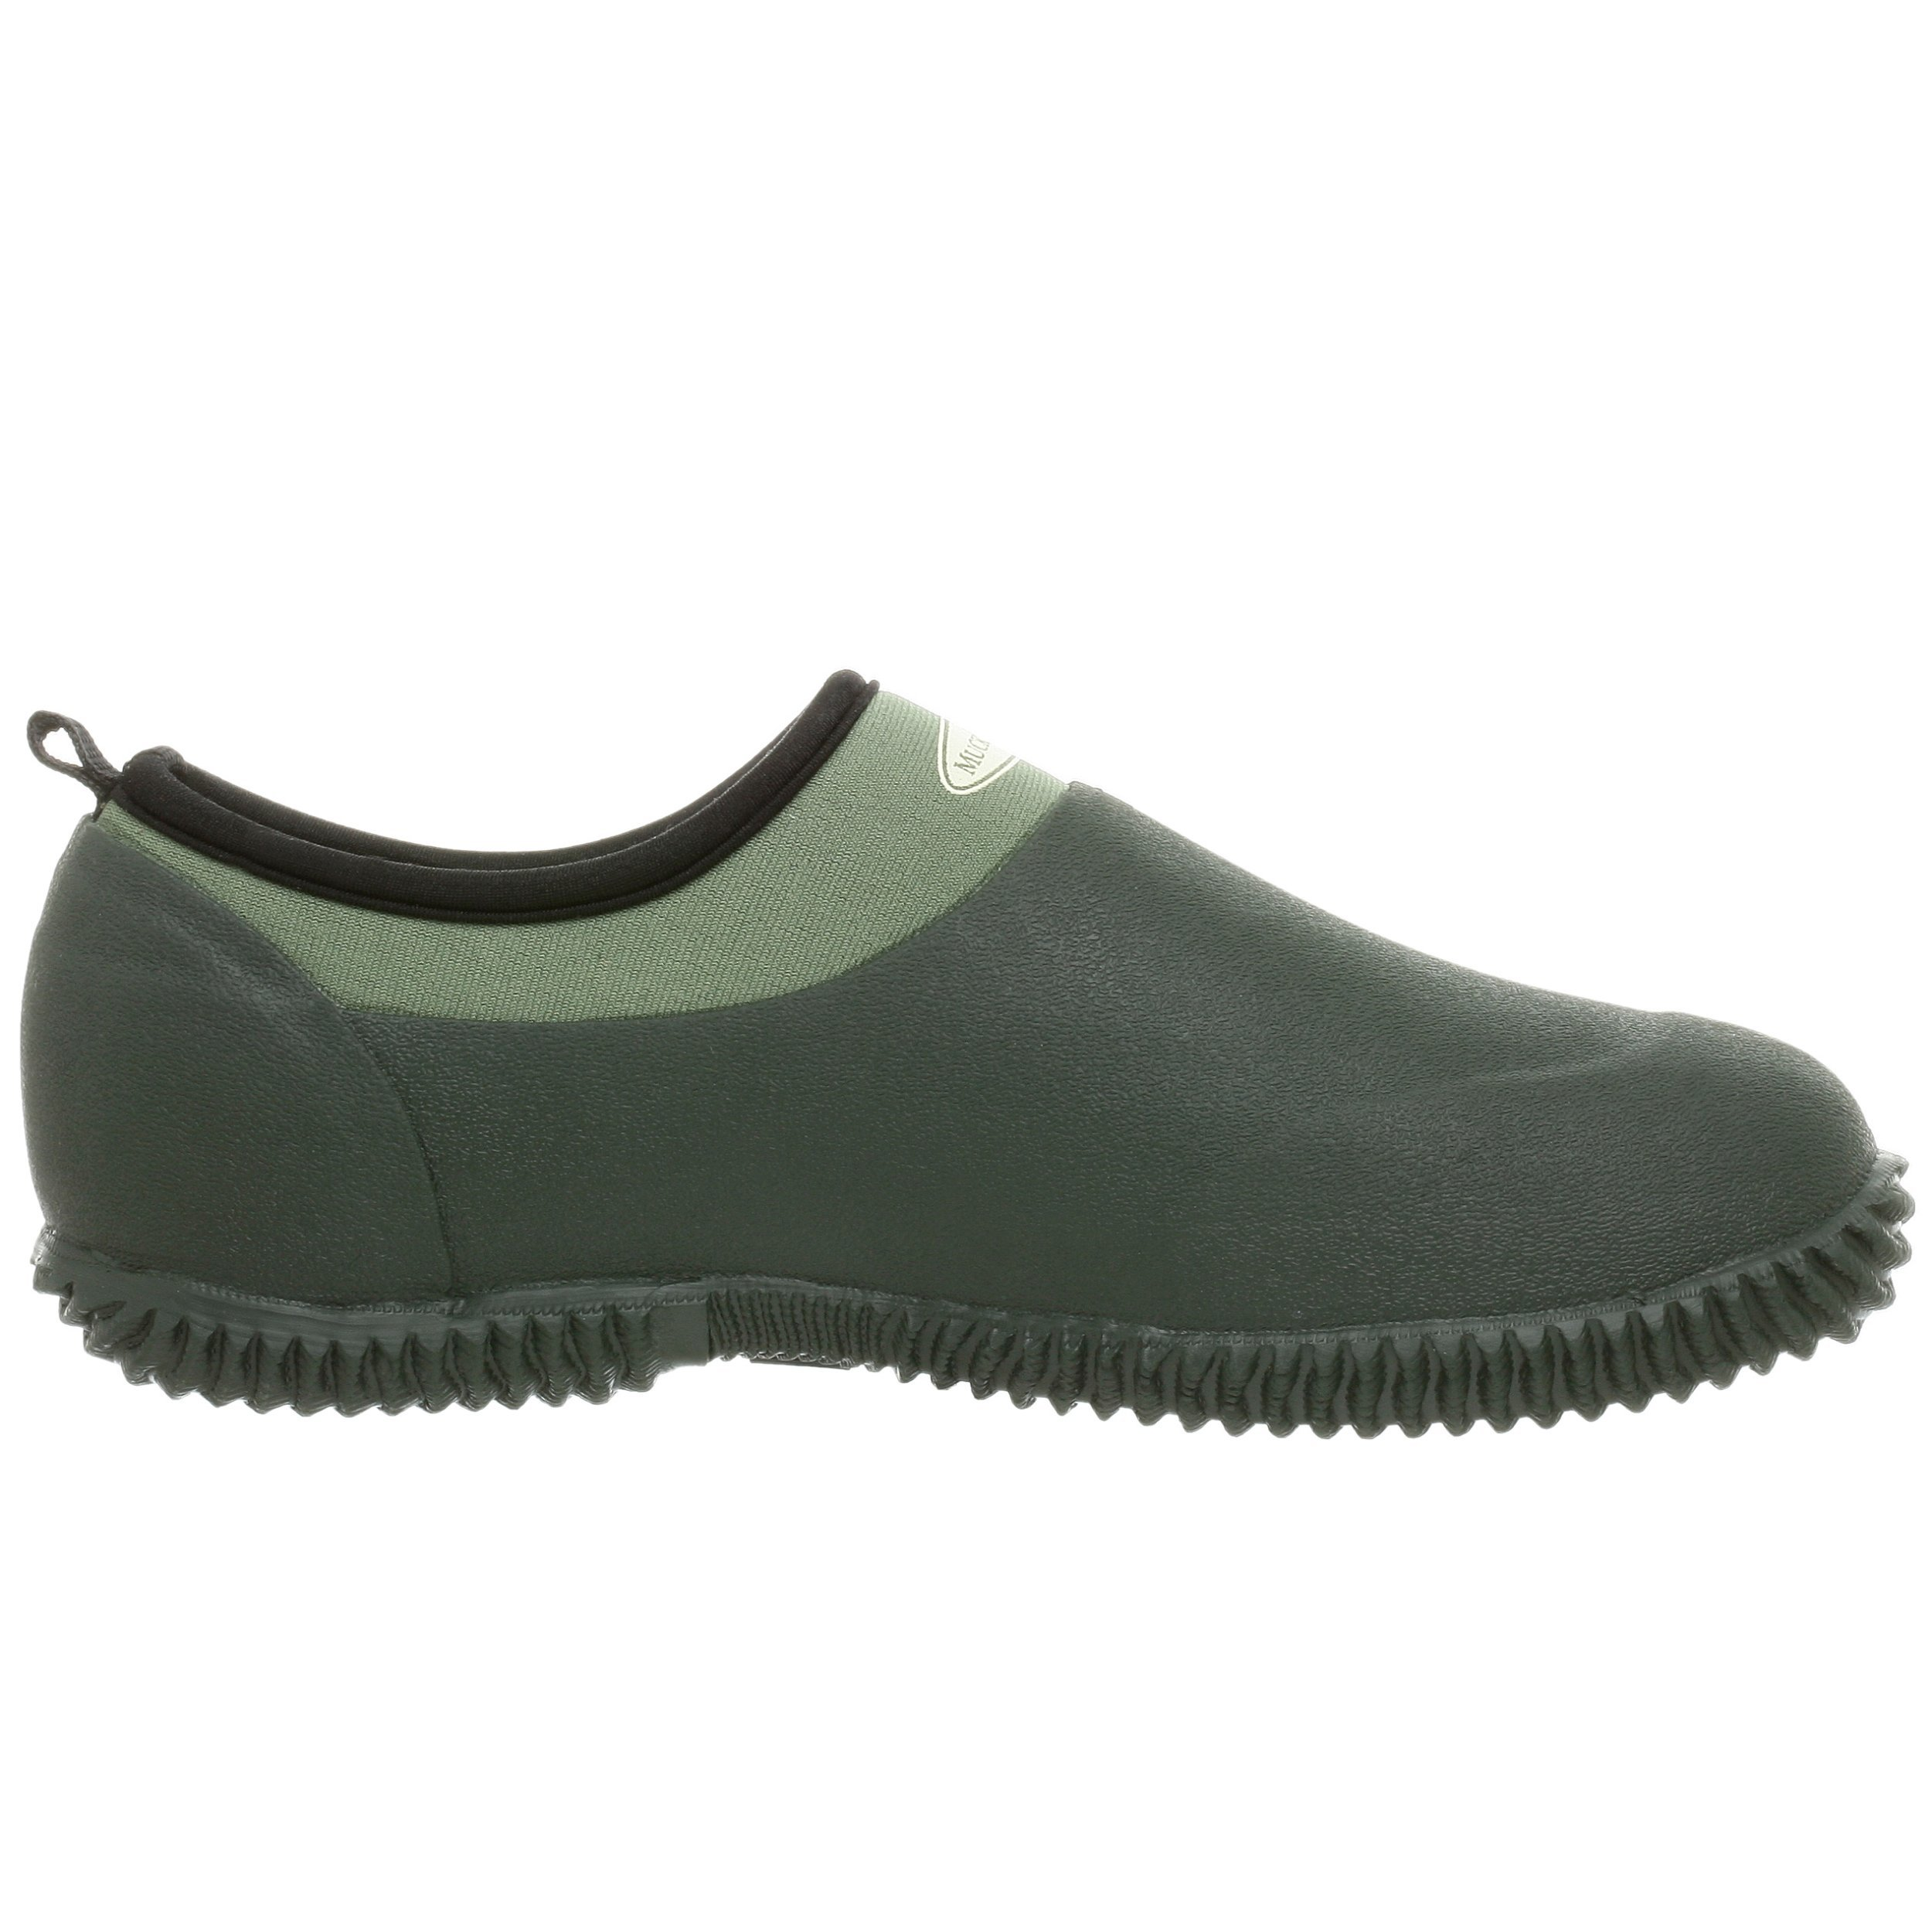 The Original MuckBoots Daily Garden ShoeGarden Green7 M US Mens